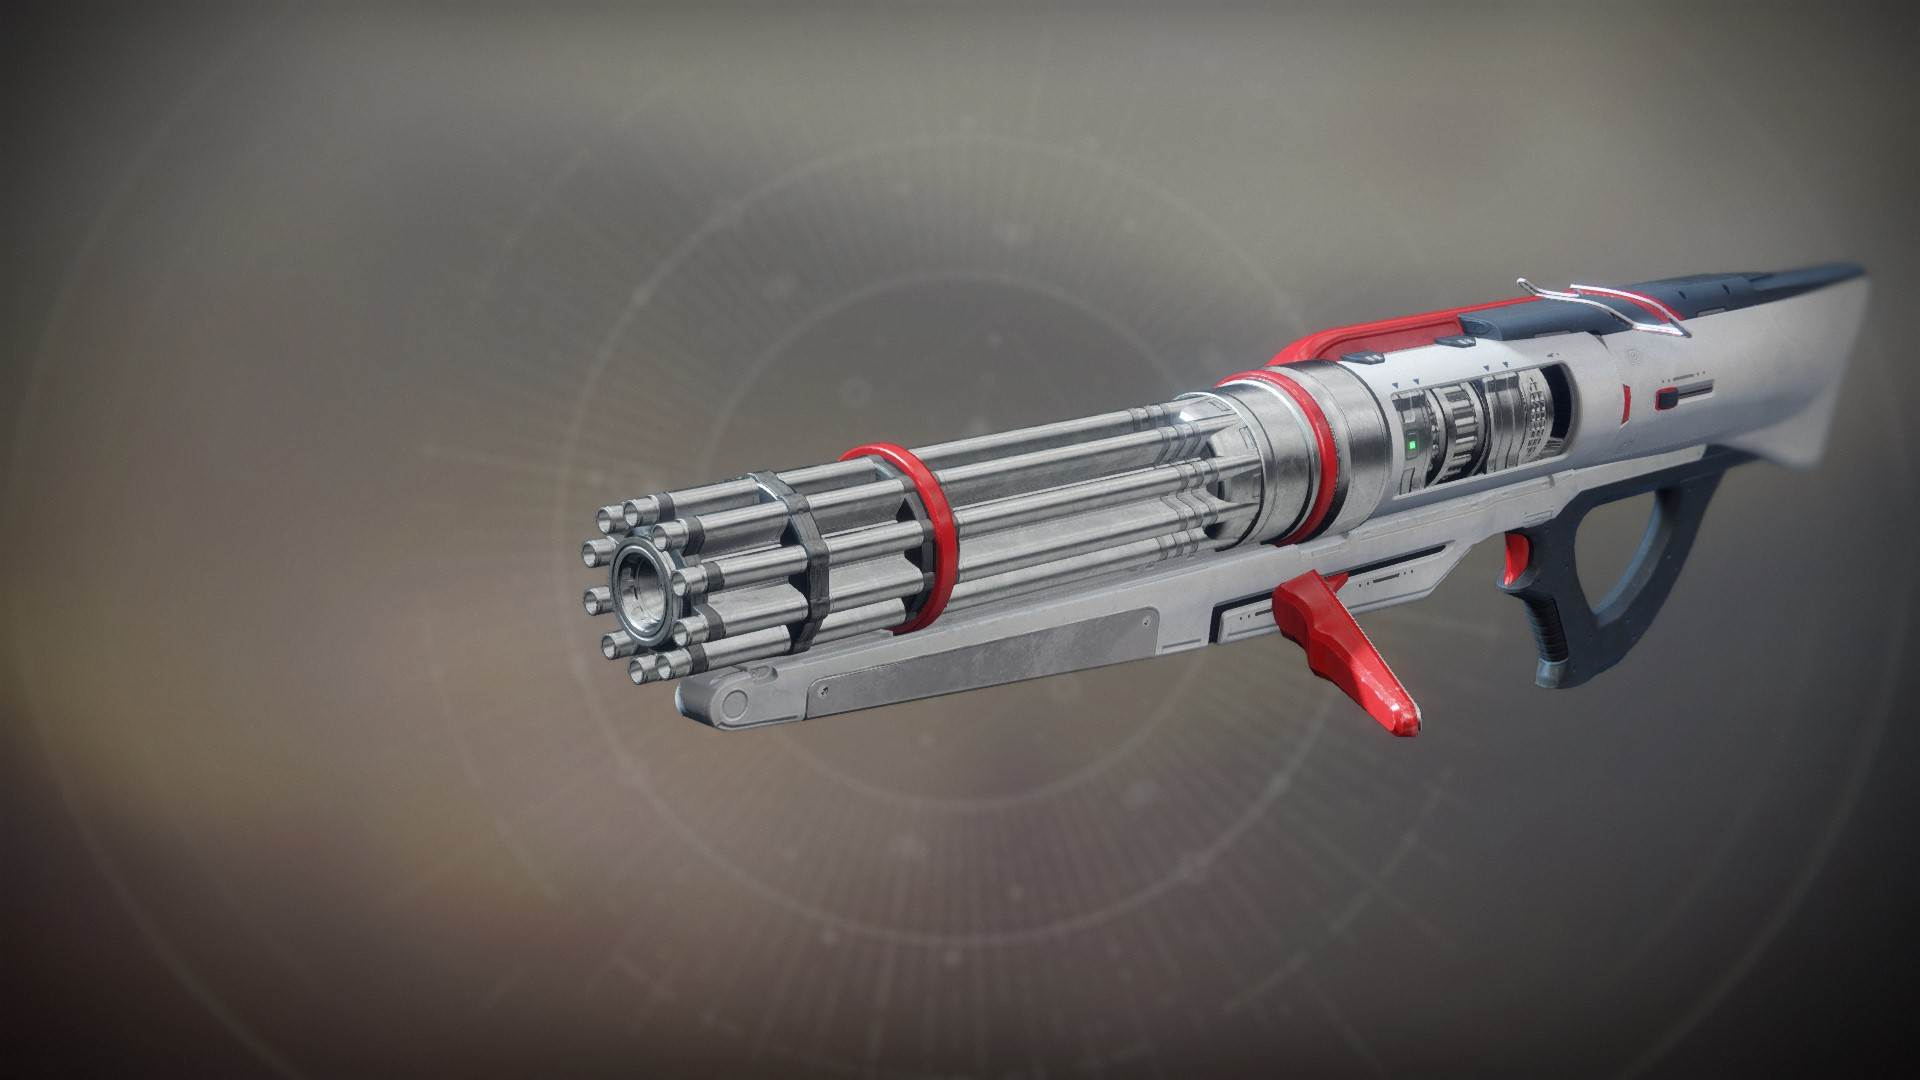 One of the items Xur has available for purchase in Destiny 2 during the week of April 26 is the Sweet Business.